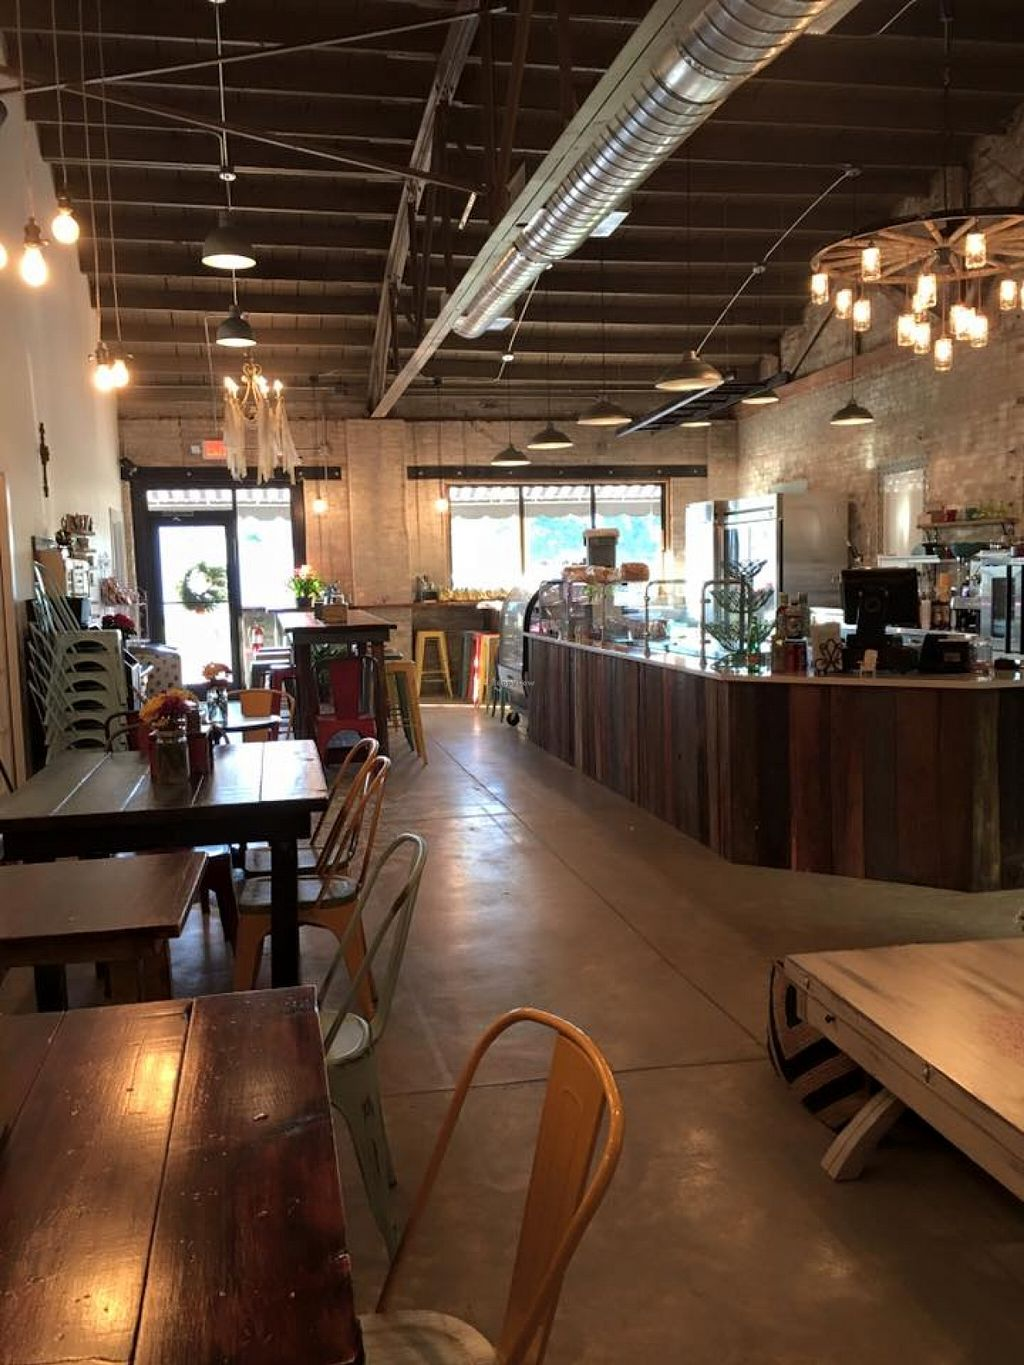 """Photo of Good News Juice and Smoothie Cafe  by <a href=""""/members/profile/community"""">community</a> <br/>inside Good News Juice and Smoothie Cafe  <br/> January 27, 2016  - <a href='/contact/abuse/image/68419/133852'>Report</a>"""